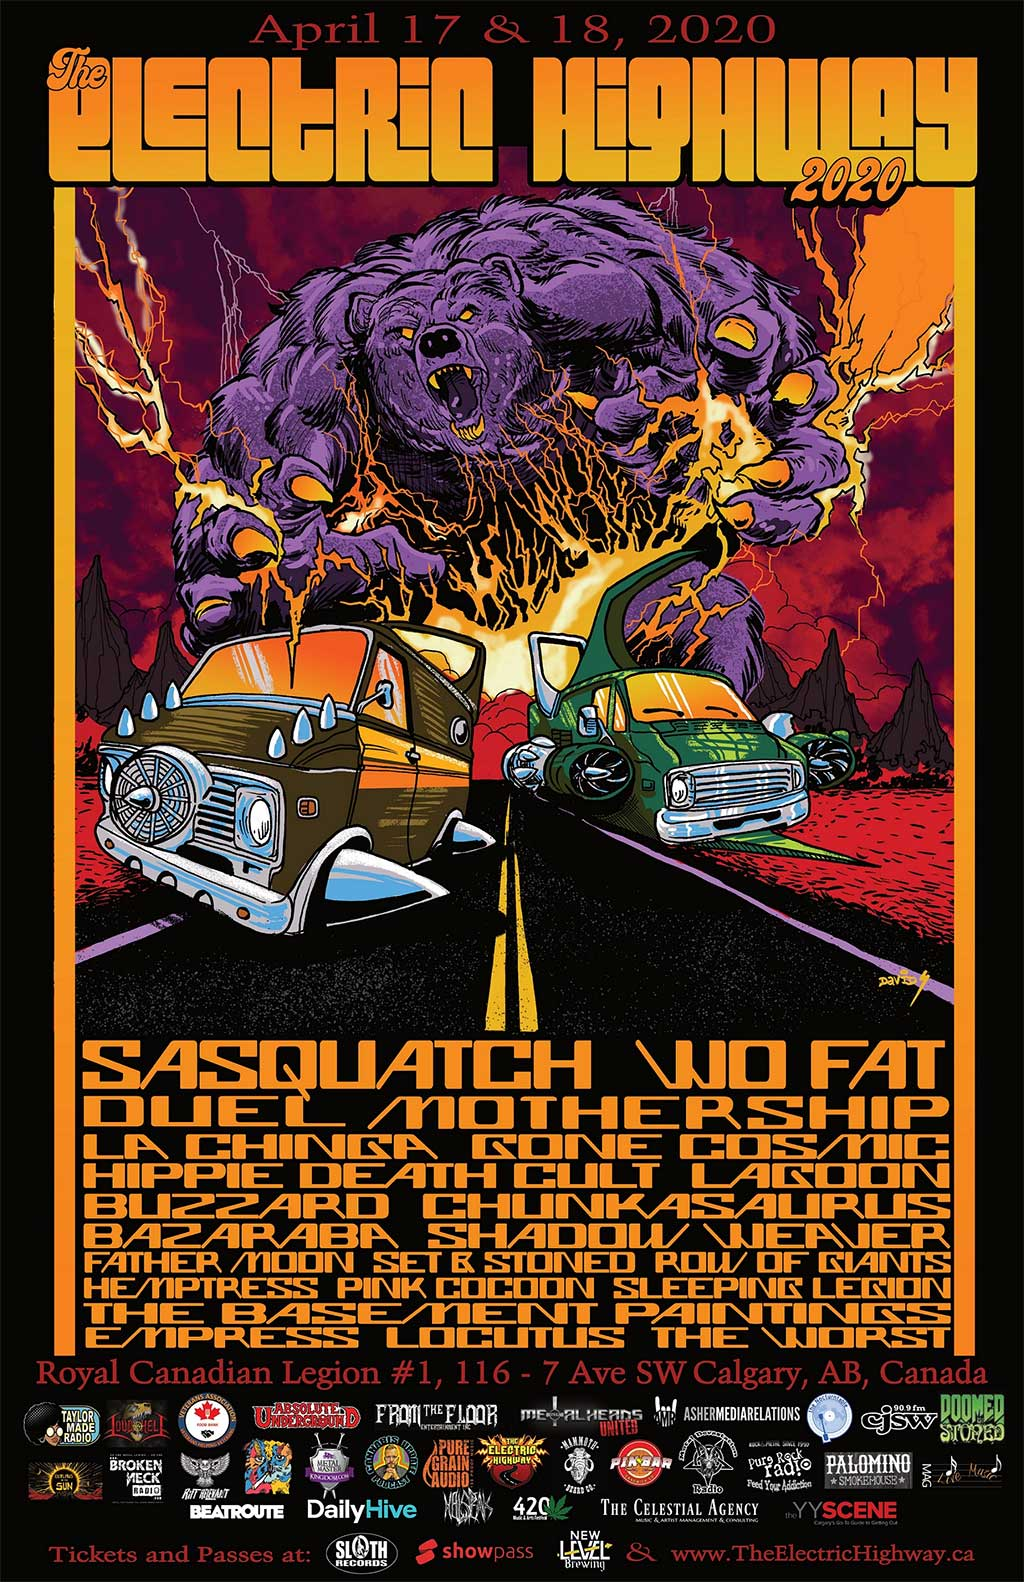 The Electric Highway Festival Official Poster